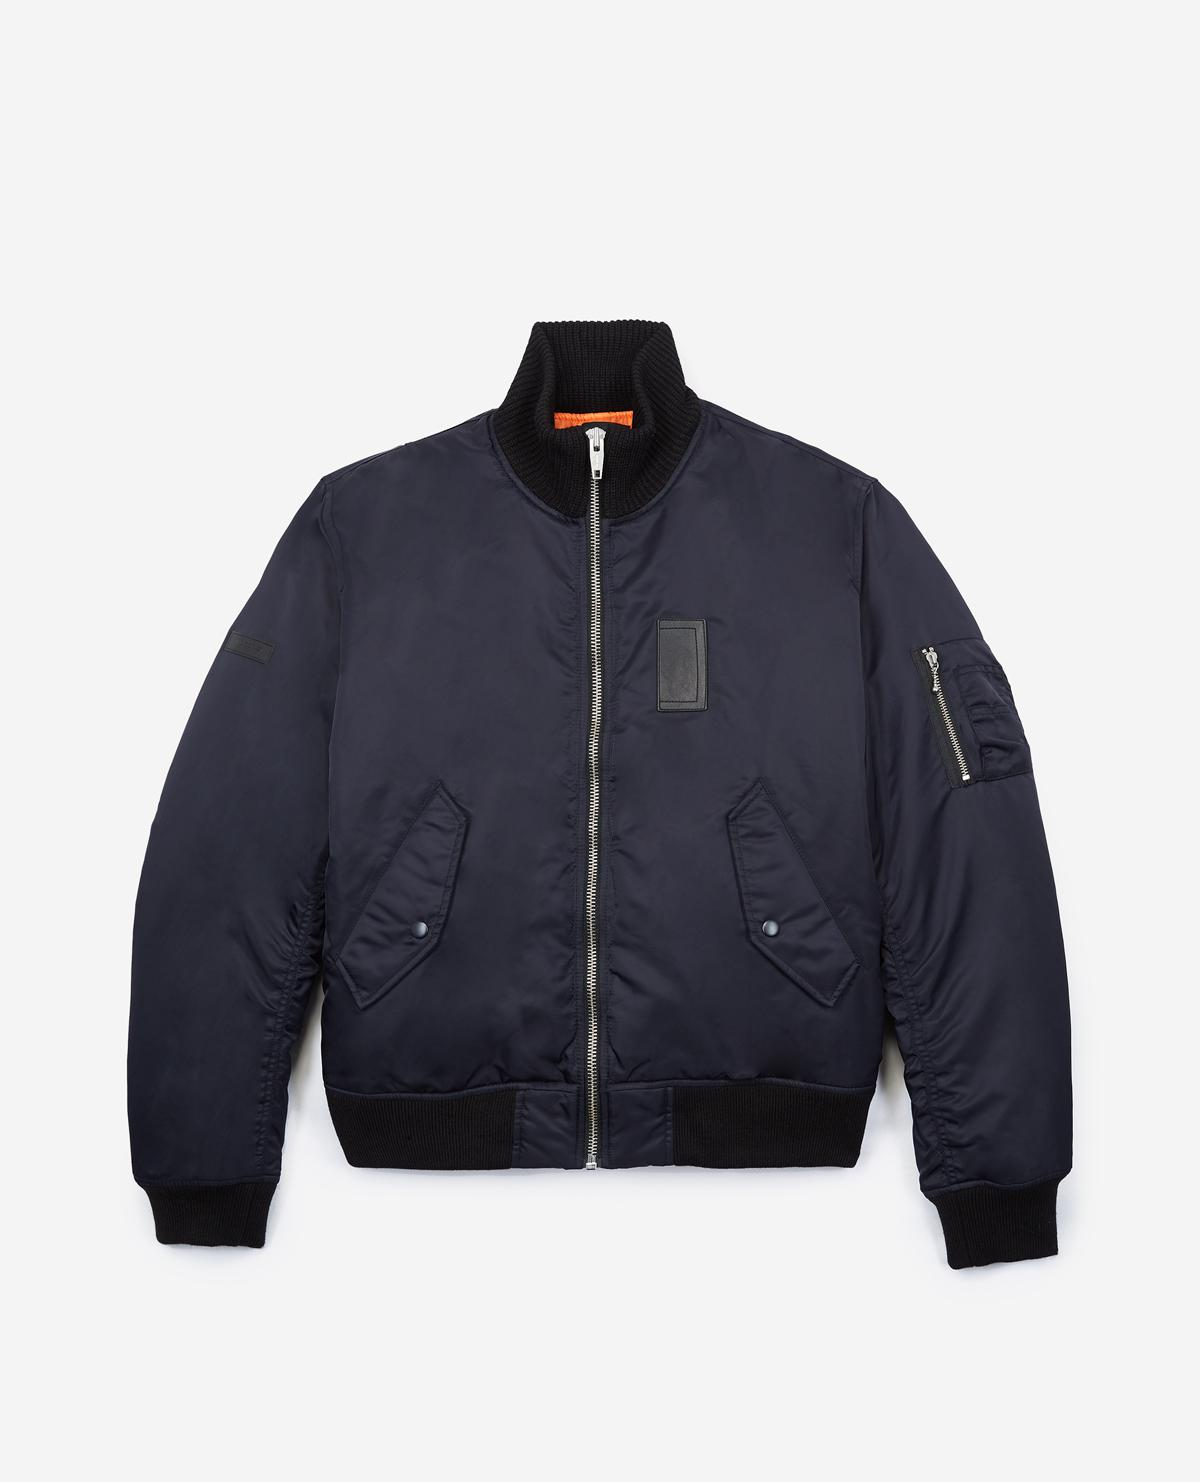 00bdb6f8dfc Lyst - The Kooples Oversize Jacket With Raised Rib Collar in Blue ...